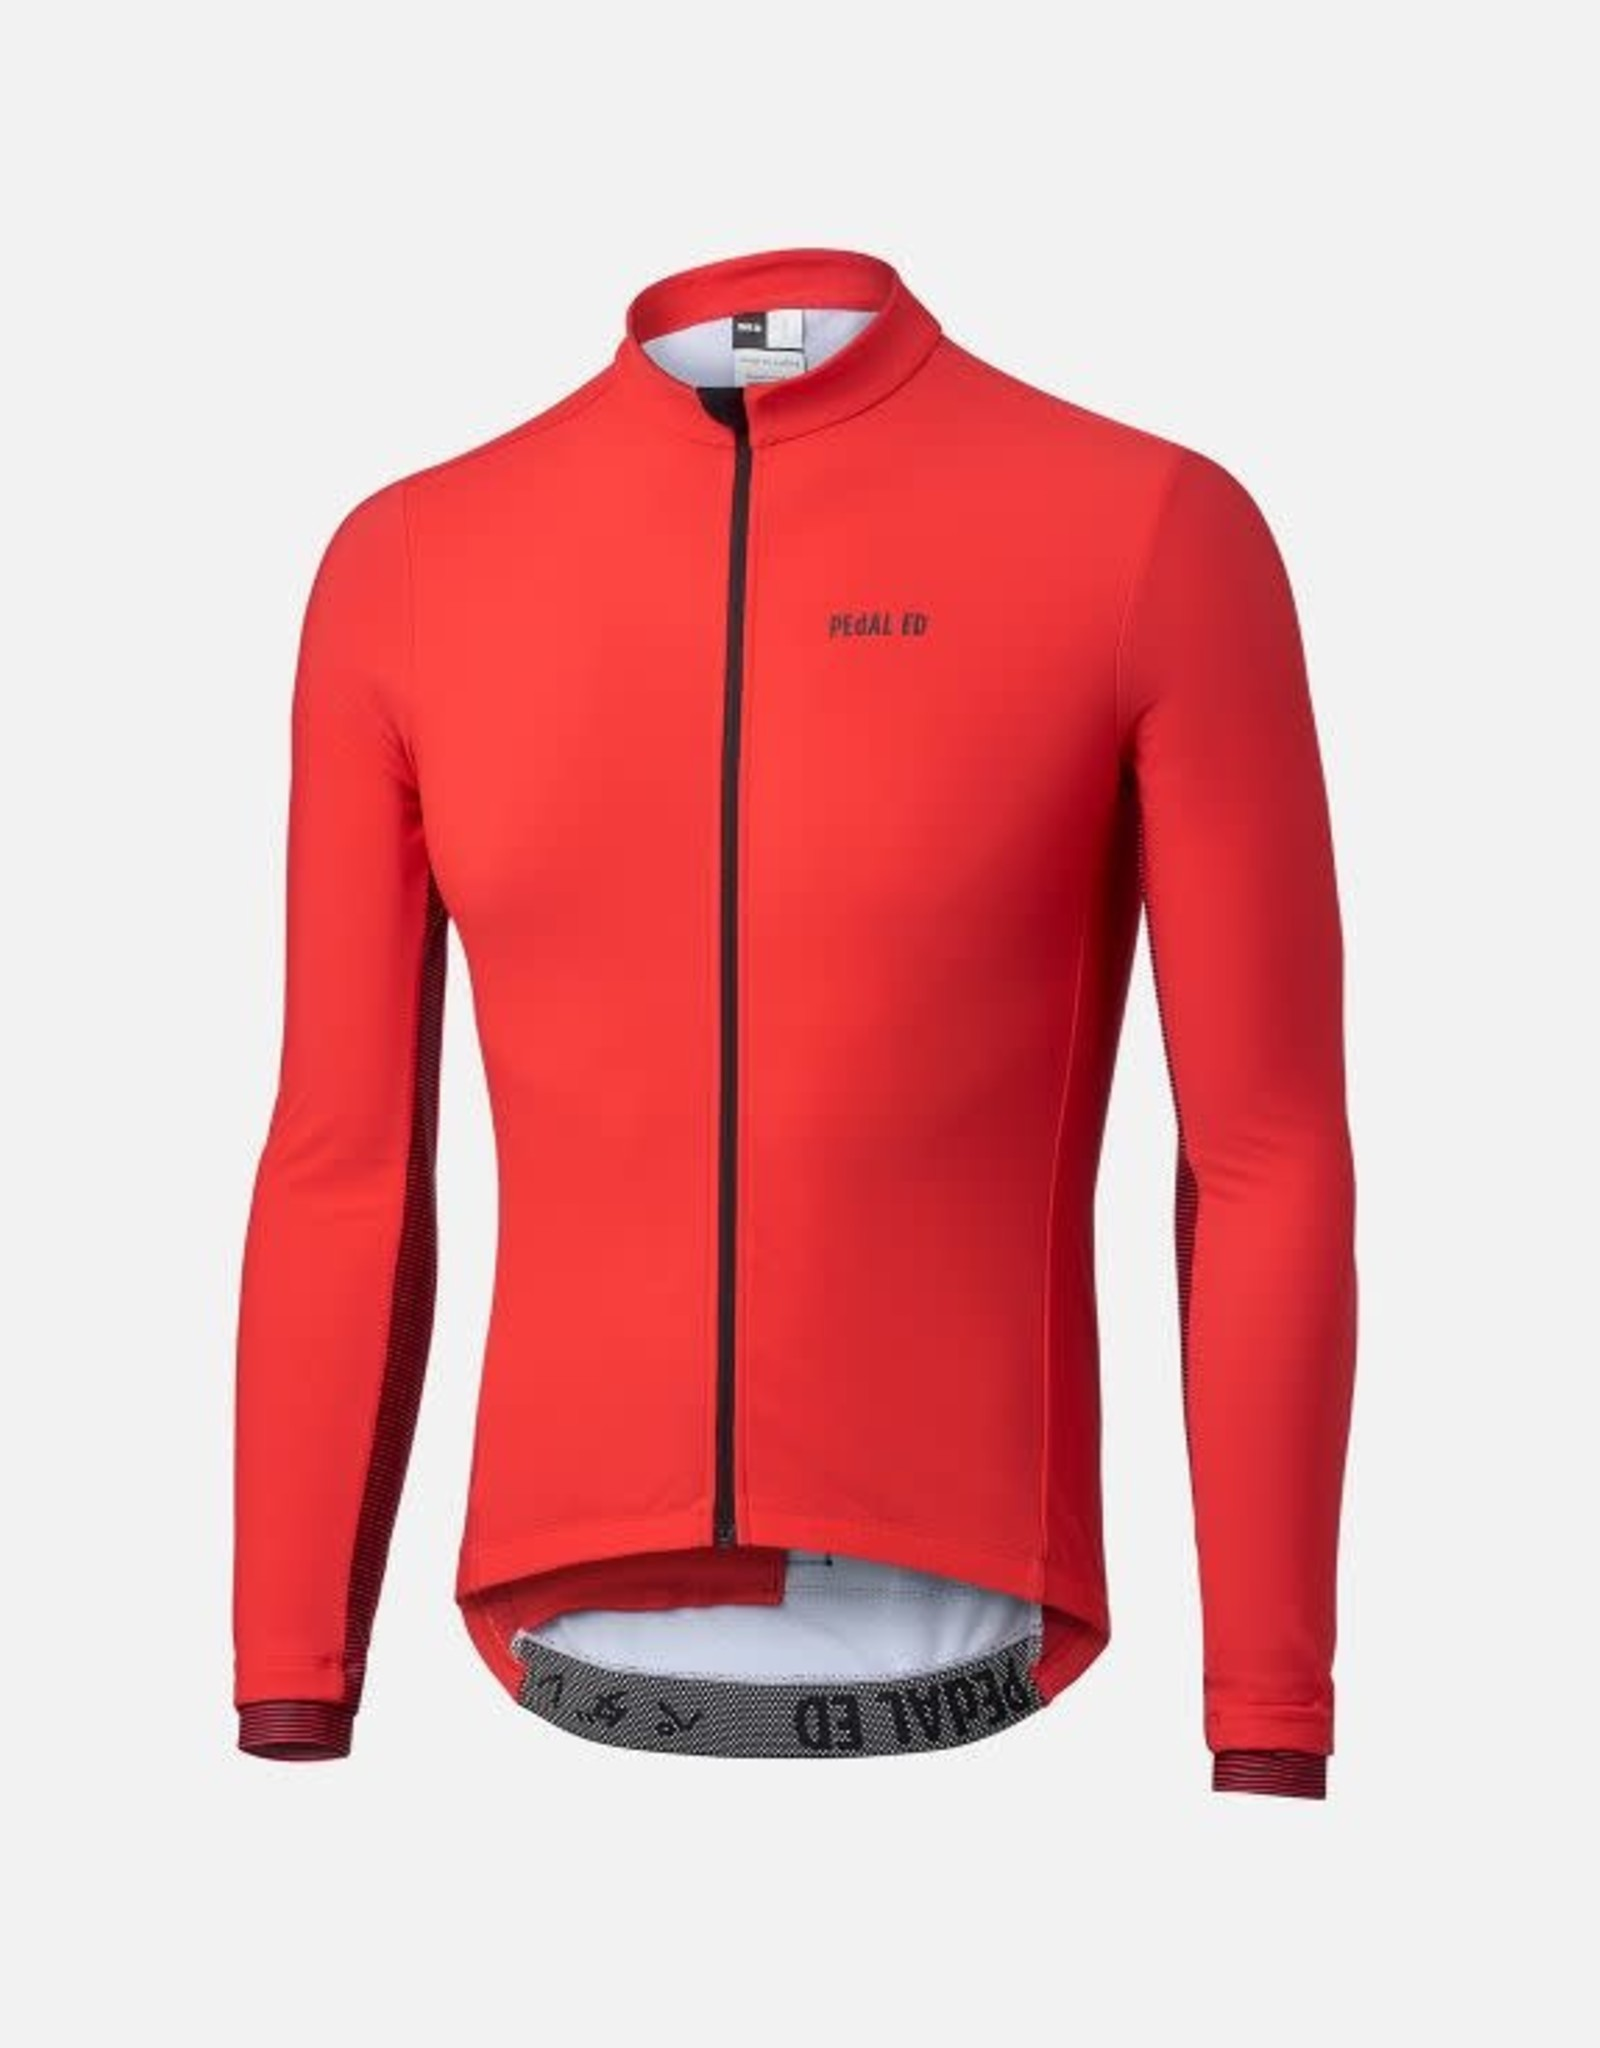 Pedal Ed Kobe Thermo Jersey - Red